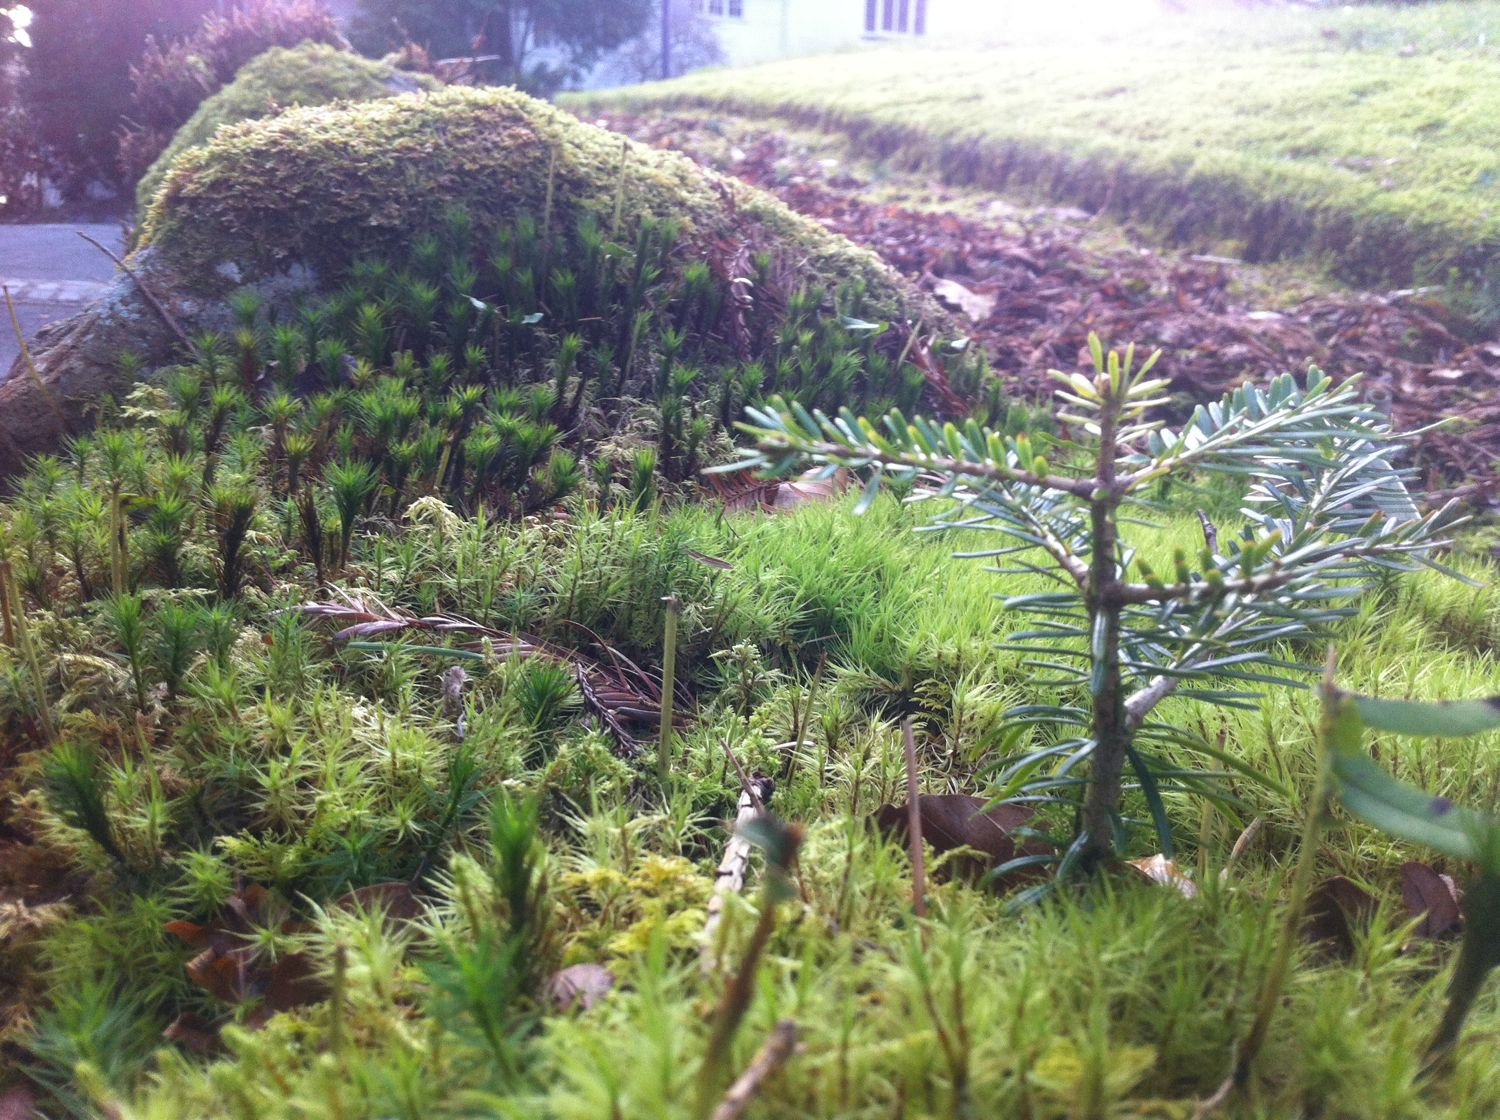 Miniature forest worlds - the mosses on a stone